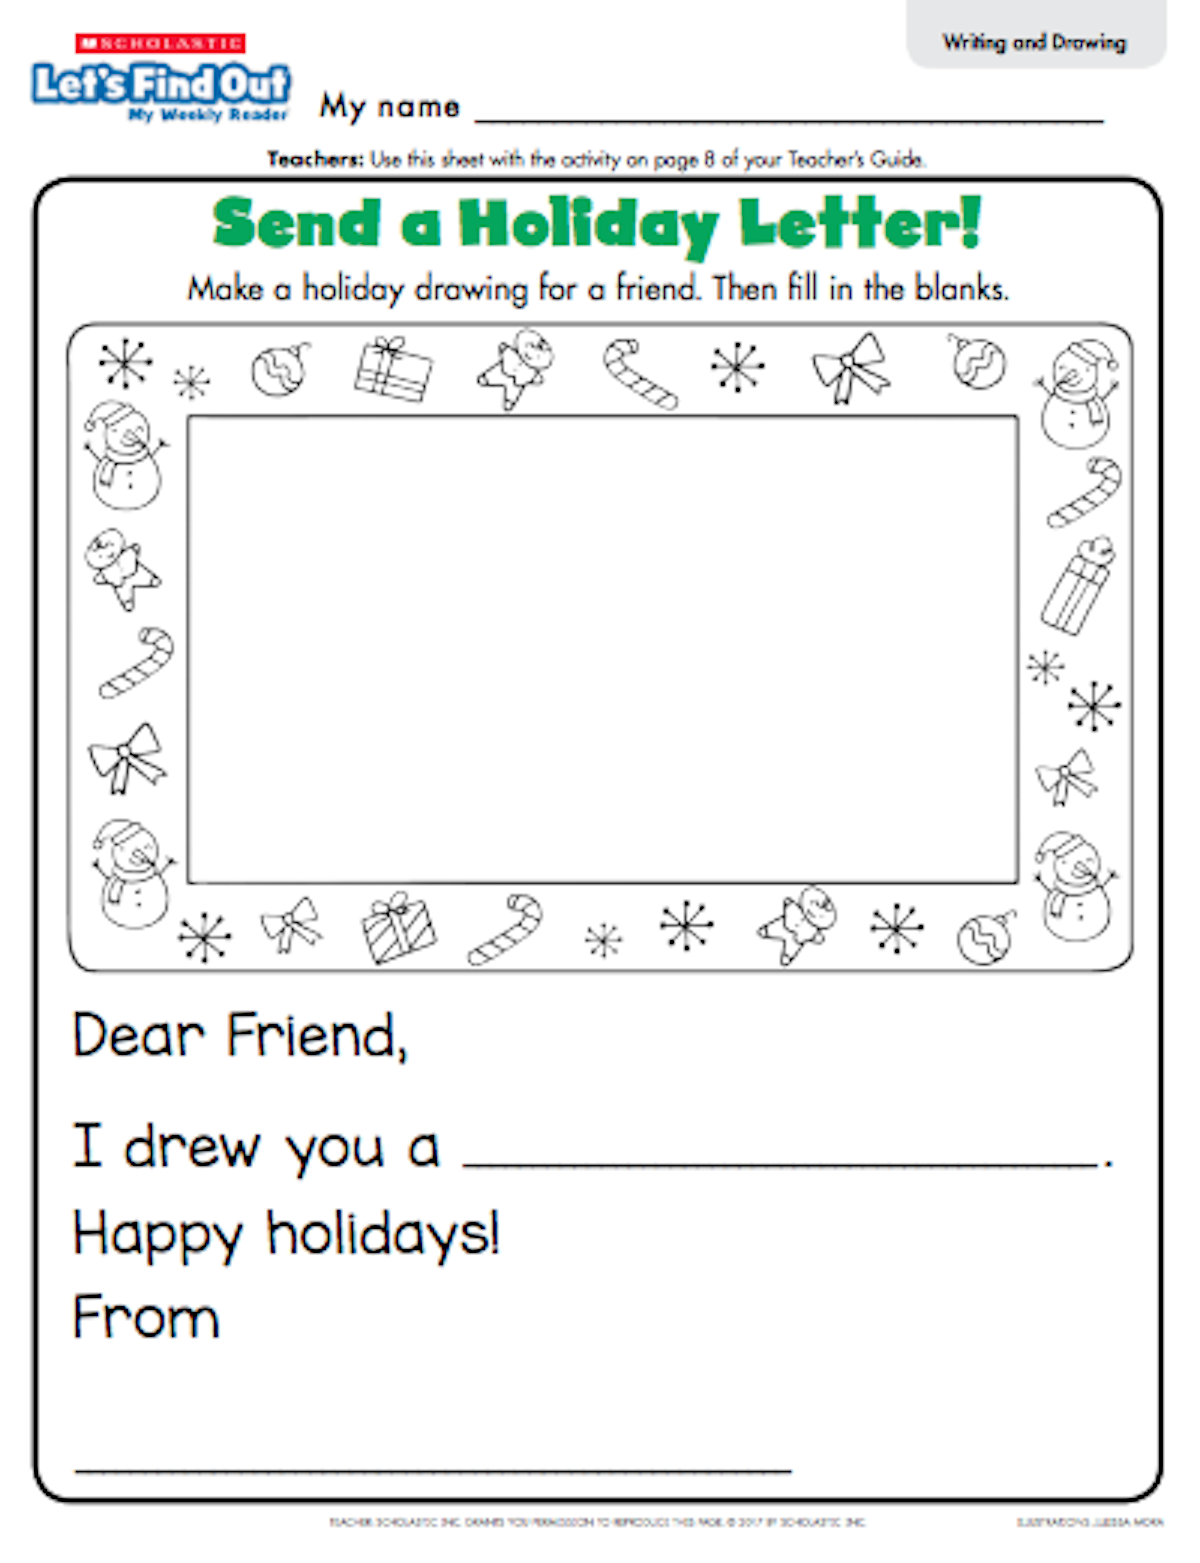 Teaching letter writing skills with santa scholastic the blank on the letter template it is the perfect introduction to the idea of letter writing before you ask your class to write their letter to santa spiritdancerdesigns Images